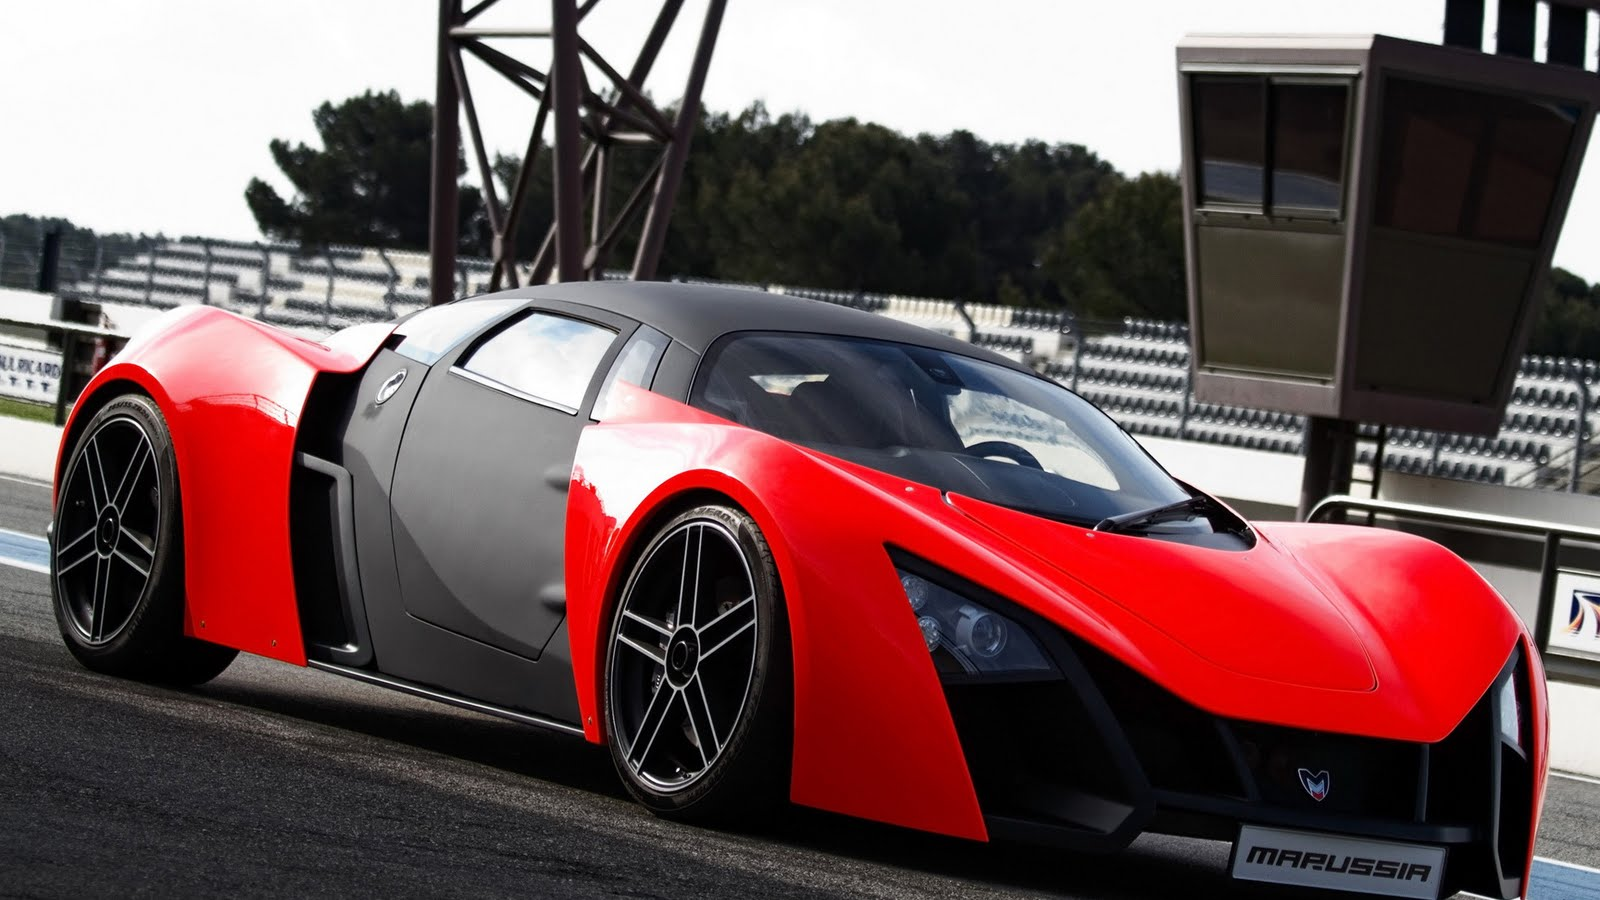 Marussia red luxury supercar HD Wallpaper The Wallpaper Database 1600x900